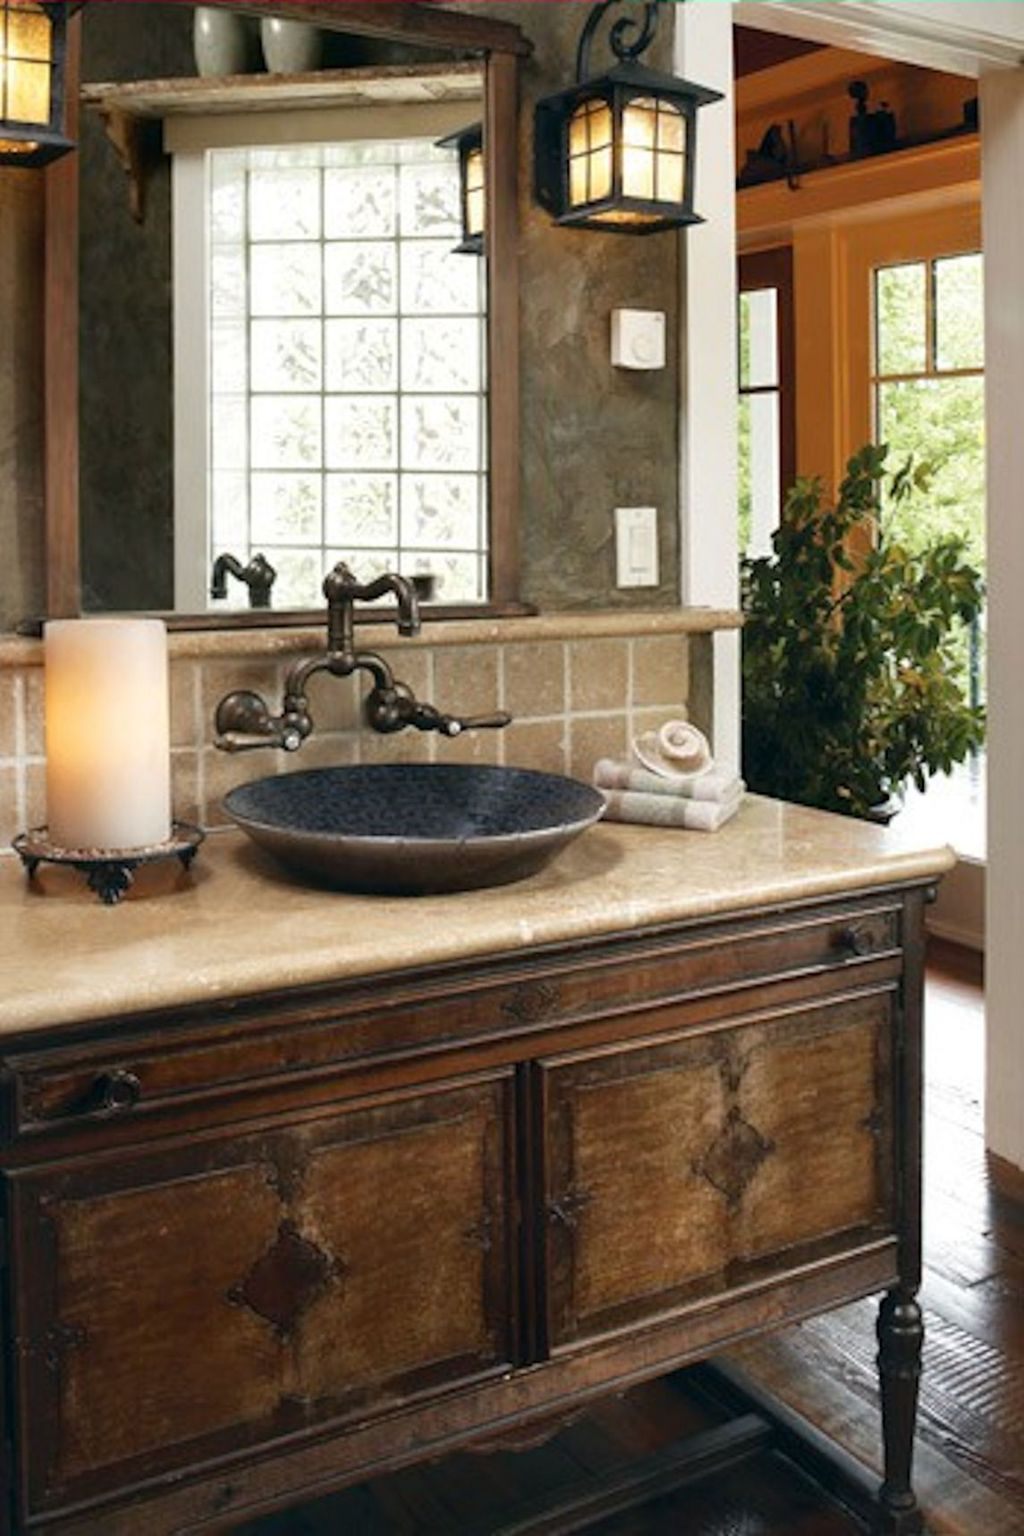 Enchanting Sink Design Ideas That Inspiring In This Year 10